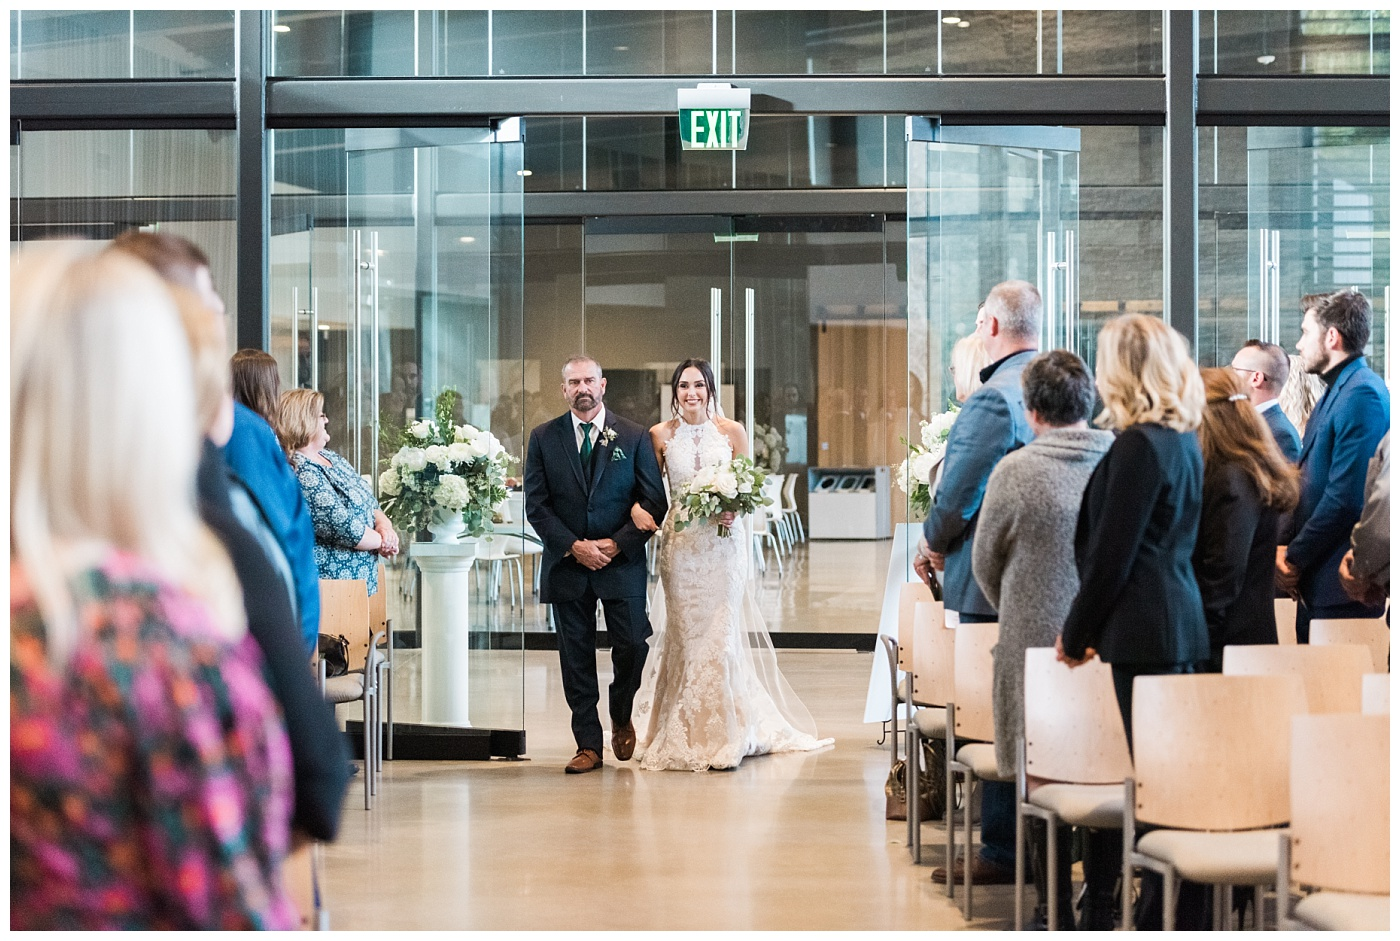 Stephanie Marie Photography Unitarian Universalist Society Church Ceremony Hotel Kirkwood Reception Cedar Rapids Iowa City Wedding Photographer Sean Madison Moore_0037.jpg